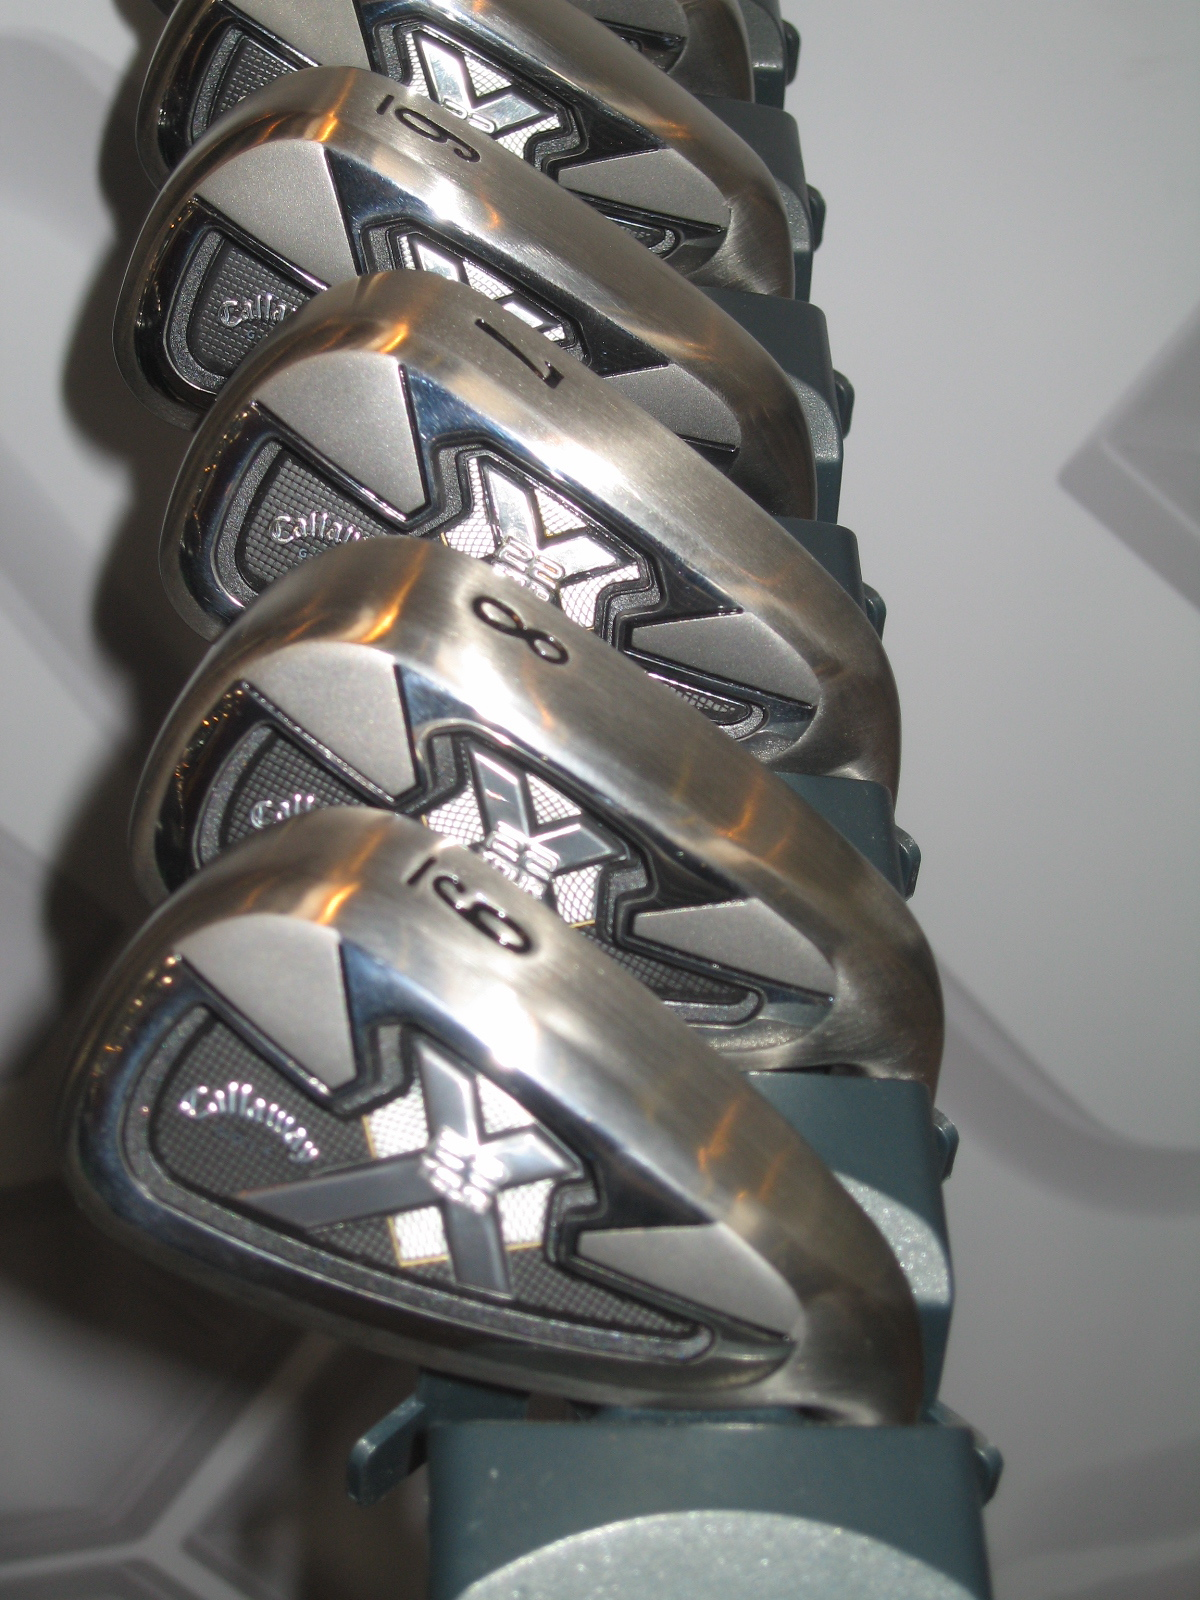 Callaway X22 Tour irons feature a deep cavity for maximum forgiveness